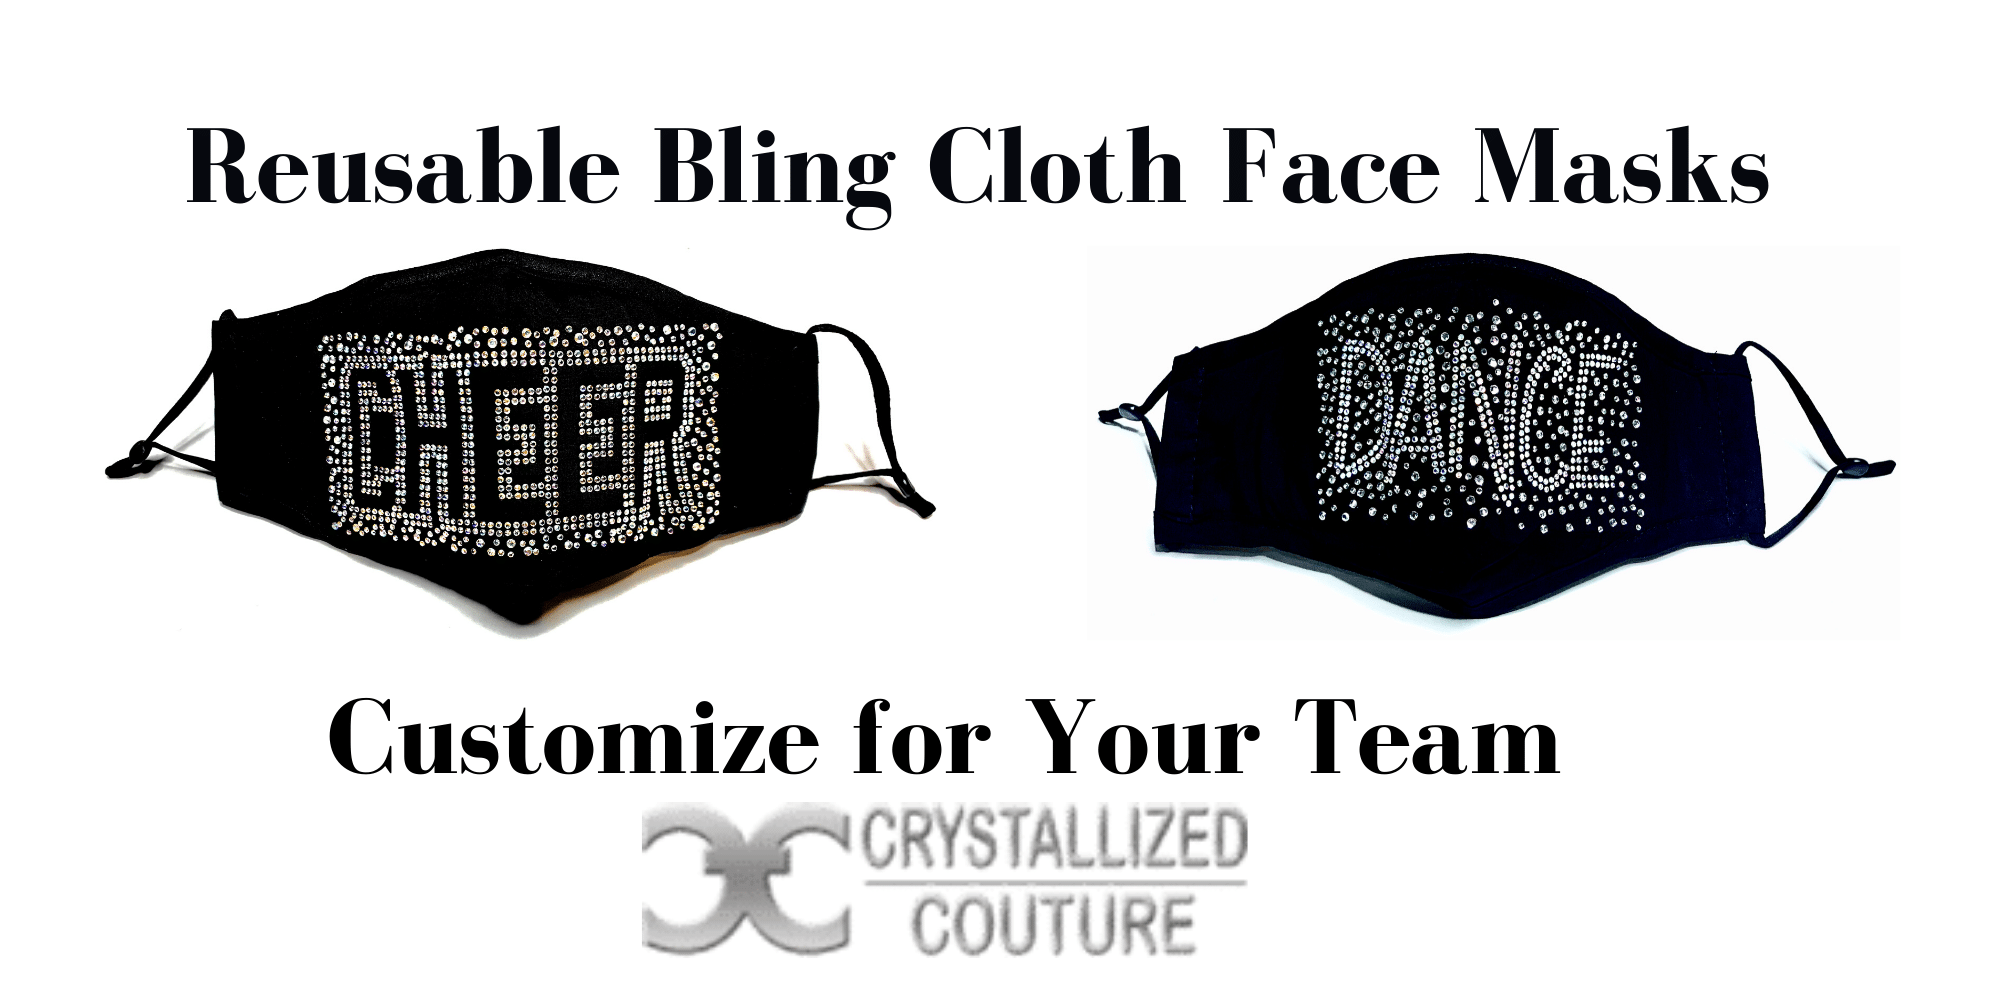 Reusable Cloth Face Masks for Cheer and Dance Teams by Crystallized Couture